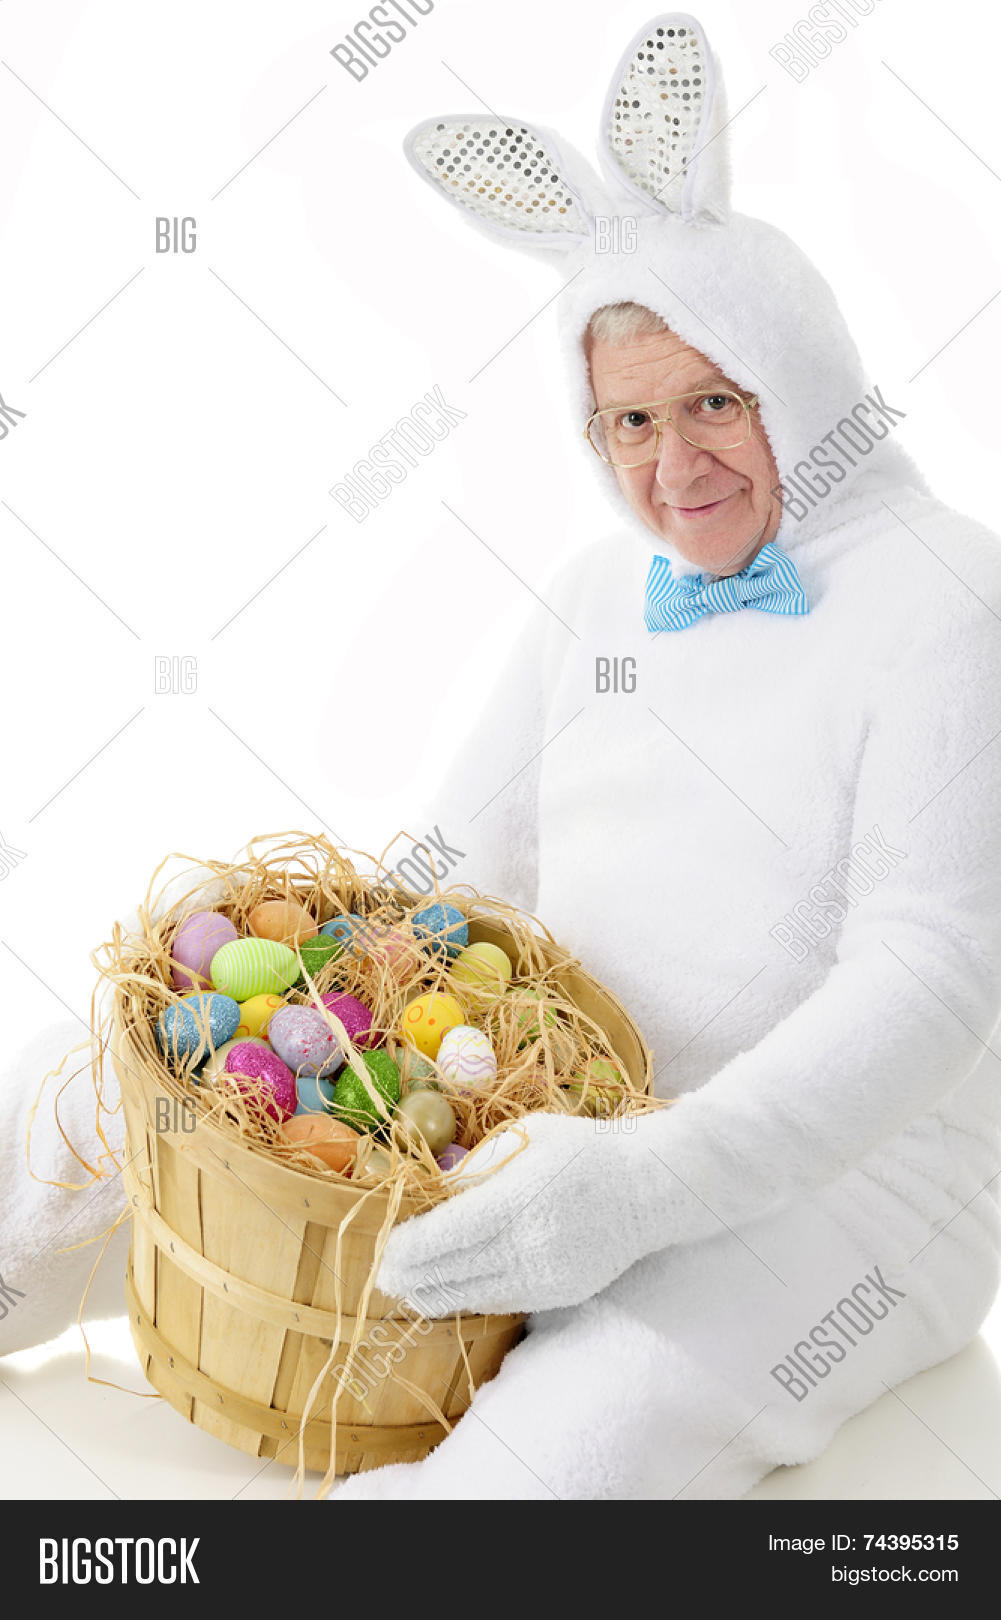 Senior adult man image photo free trial bigstock a senior adult man in an easter bunny outfit happily showing off a bushel of colorful negle